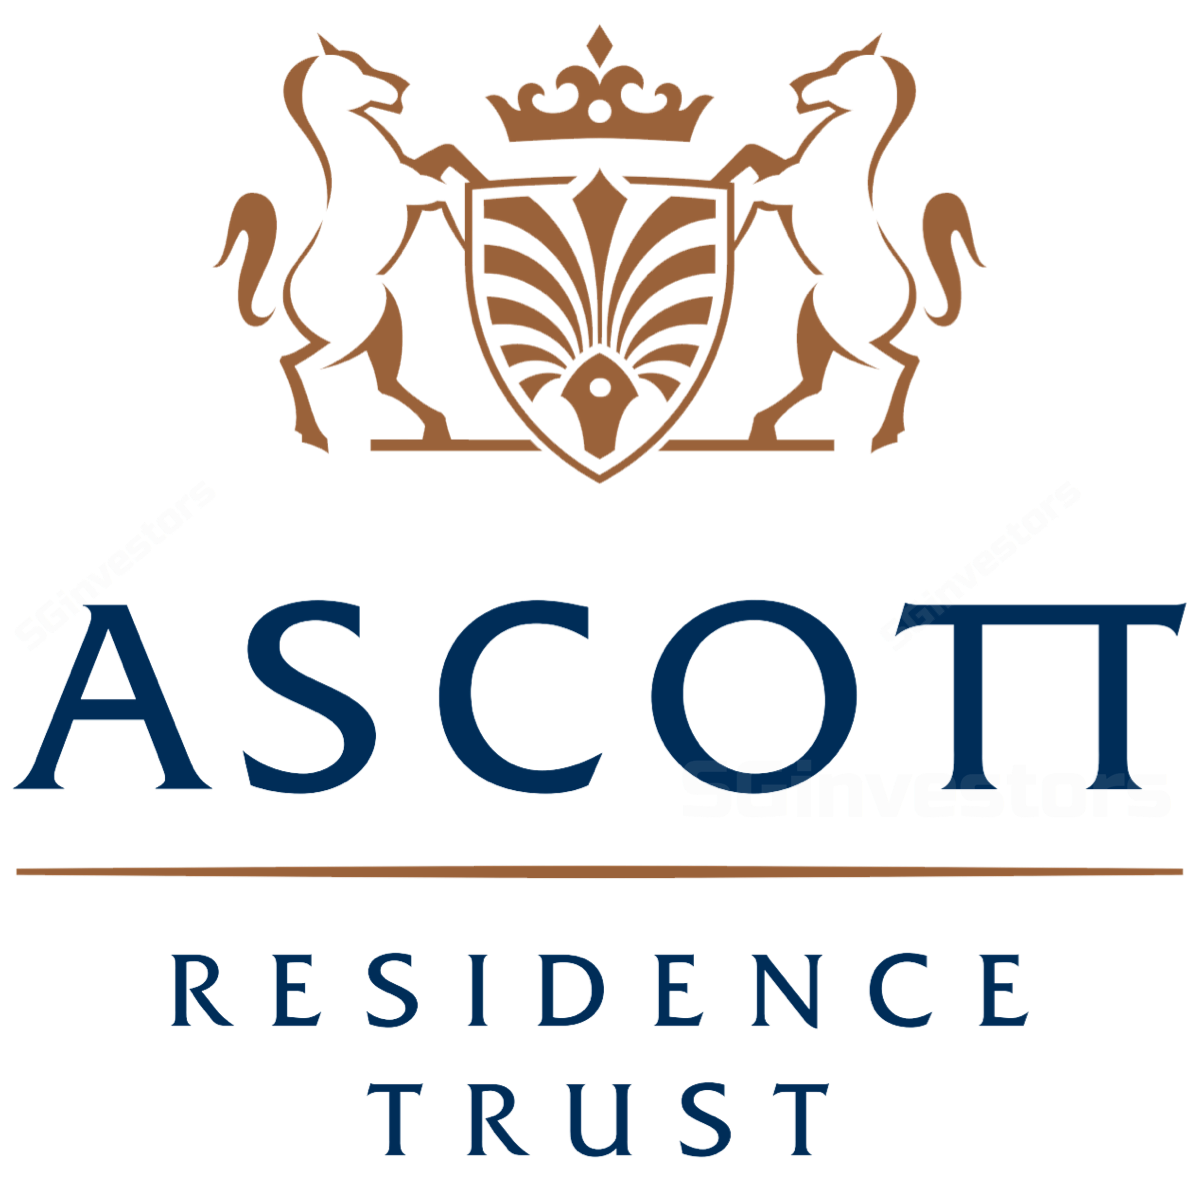 Ascott Residence Trust - DBS Vickers 2018-01-29: Growth To Return